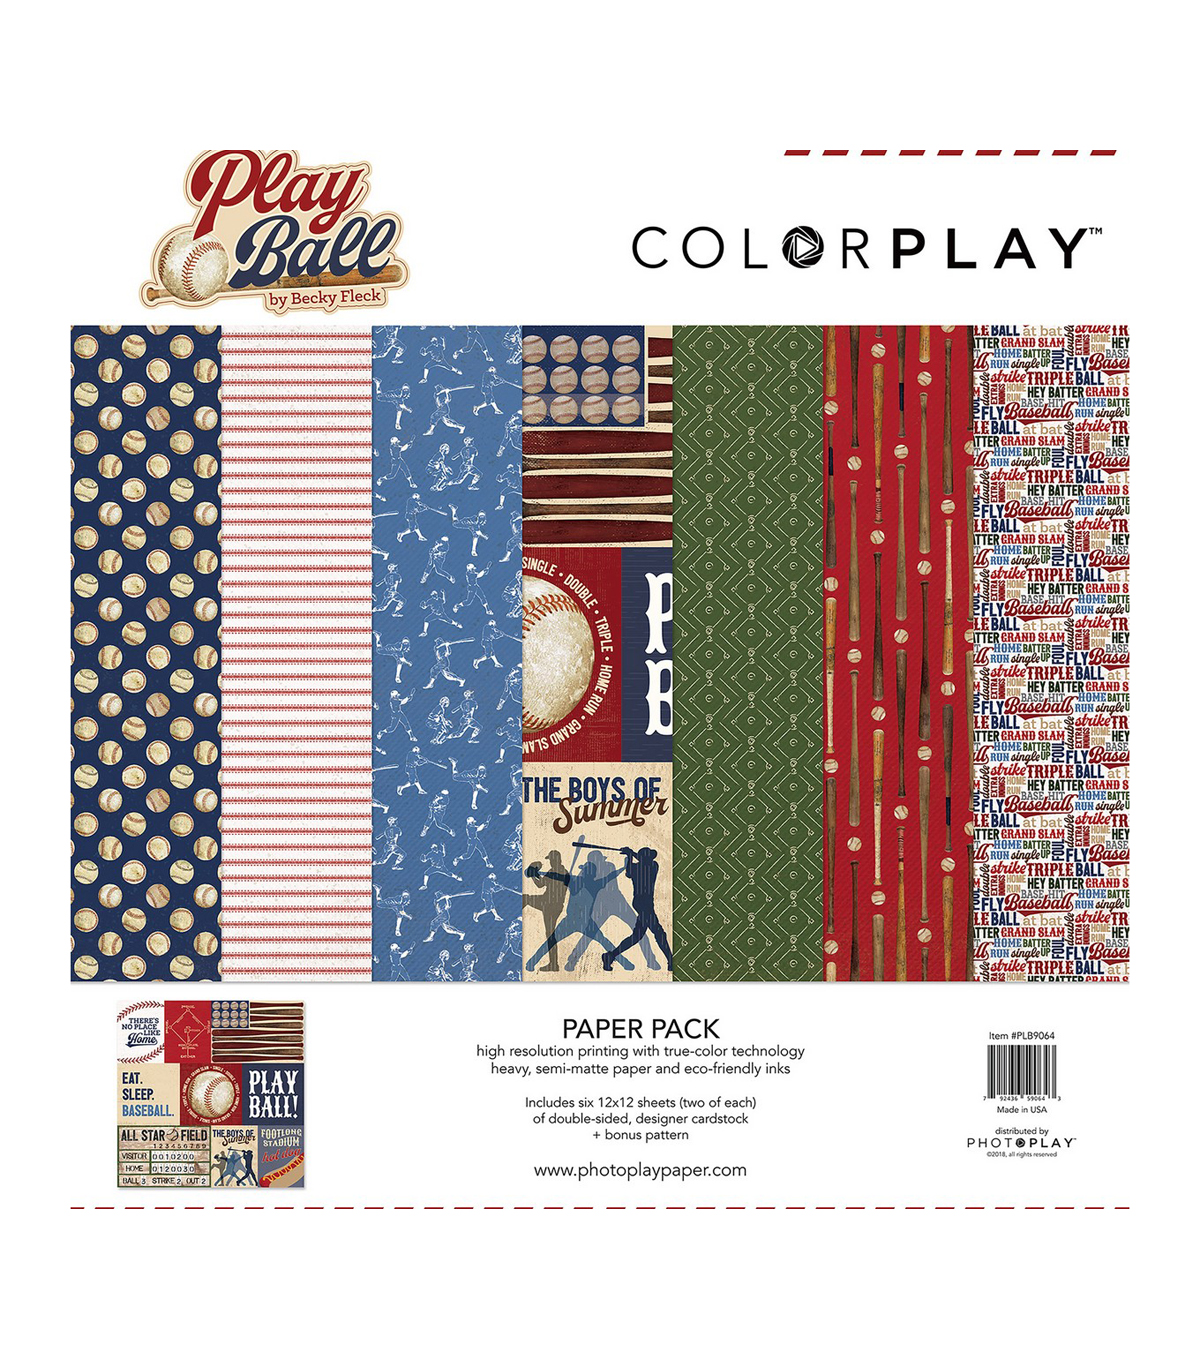 Photo Play Paper ColorPlay Play Ball Becky Fleck Collection Pack